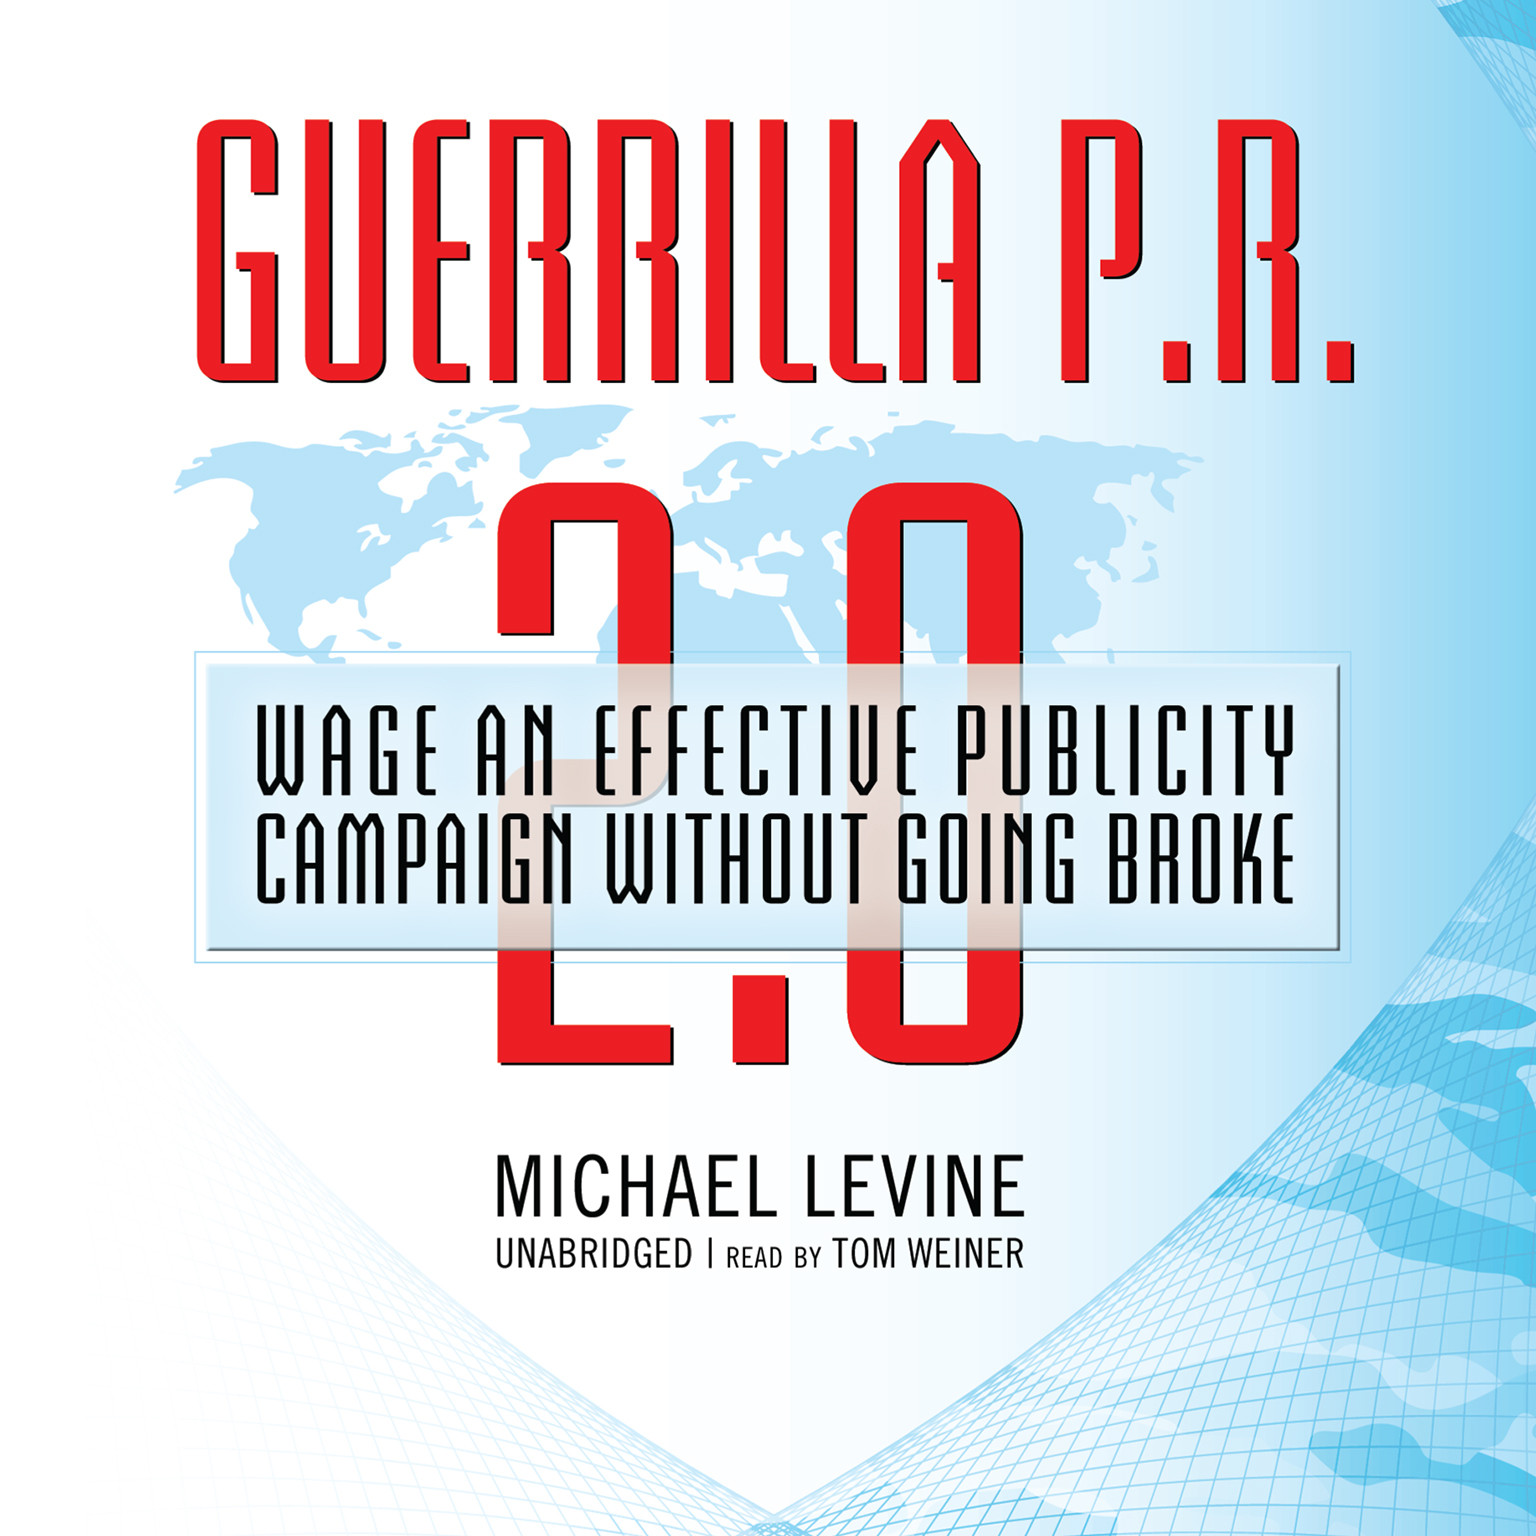 Printable Guerrilla P.R. 2.0: Wage an Effective Publicity Campaign without Going Broke Audiobook Cover Art